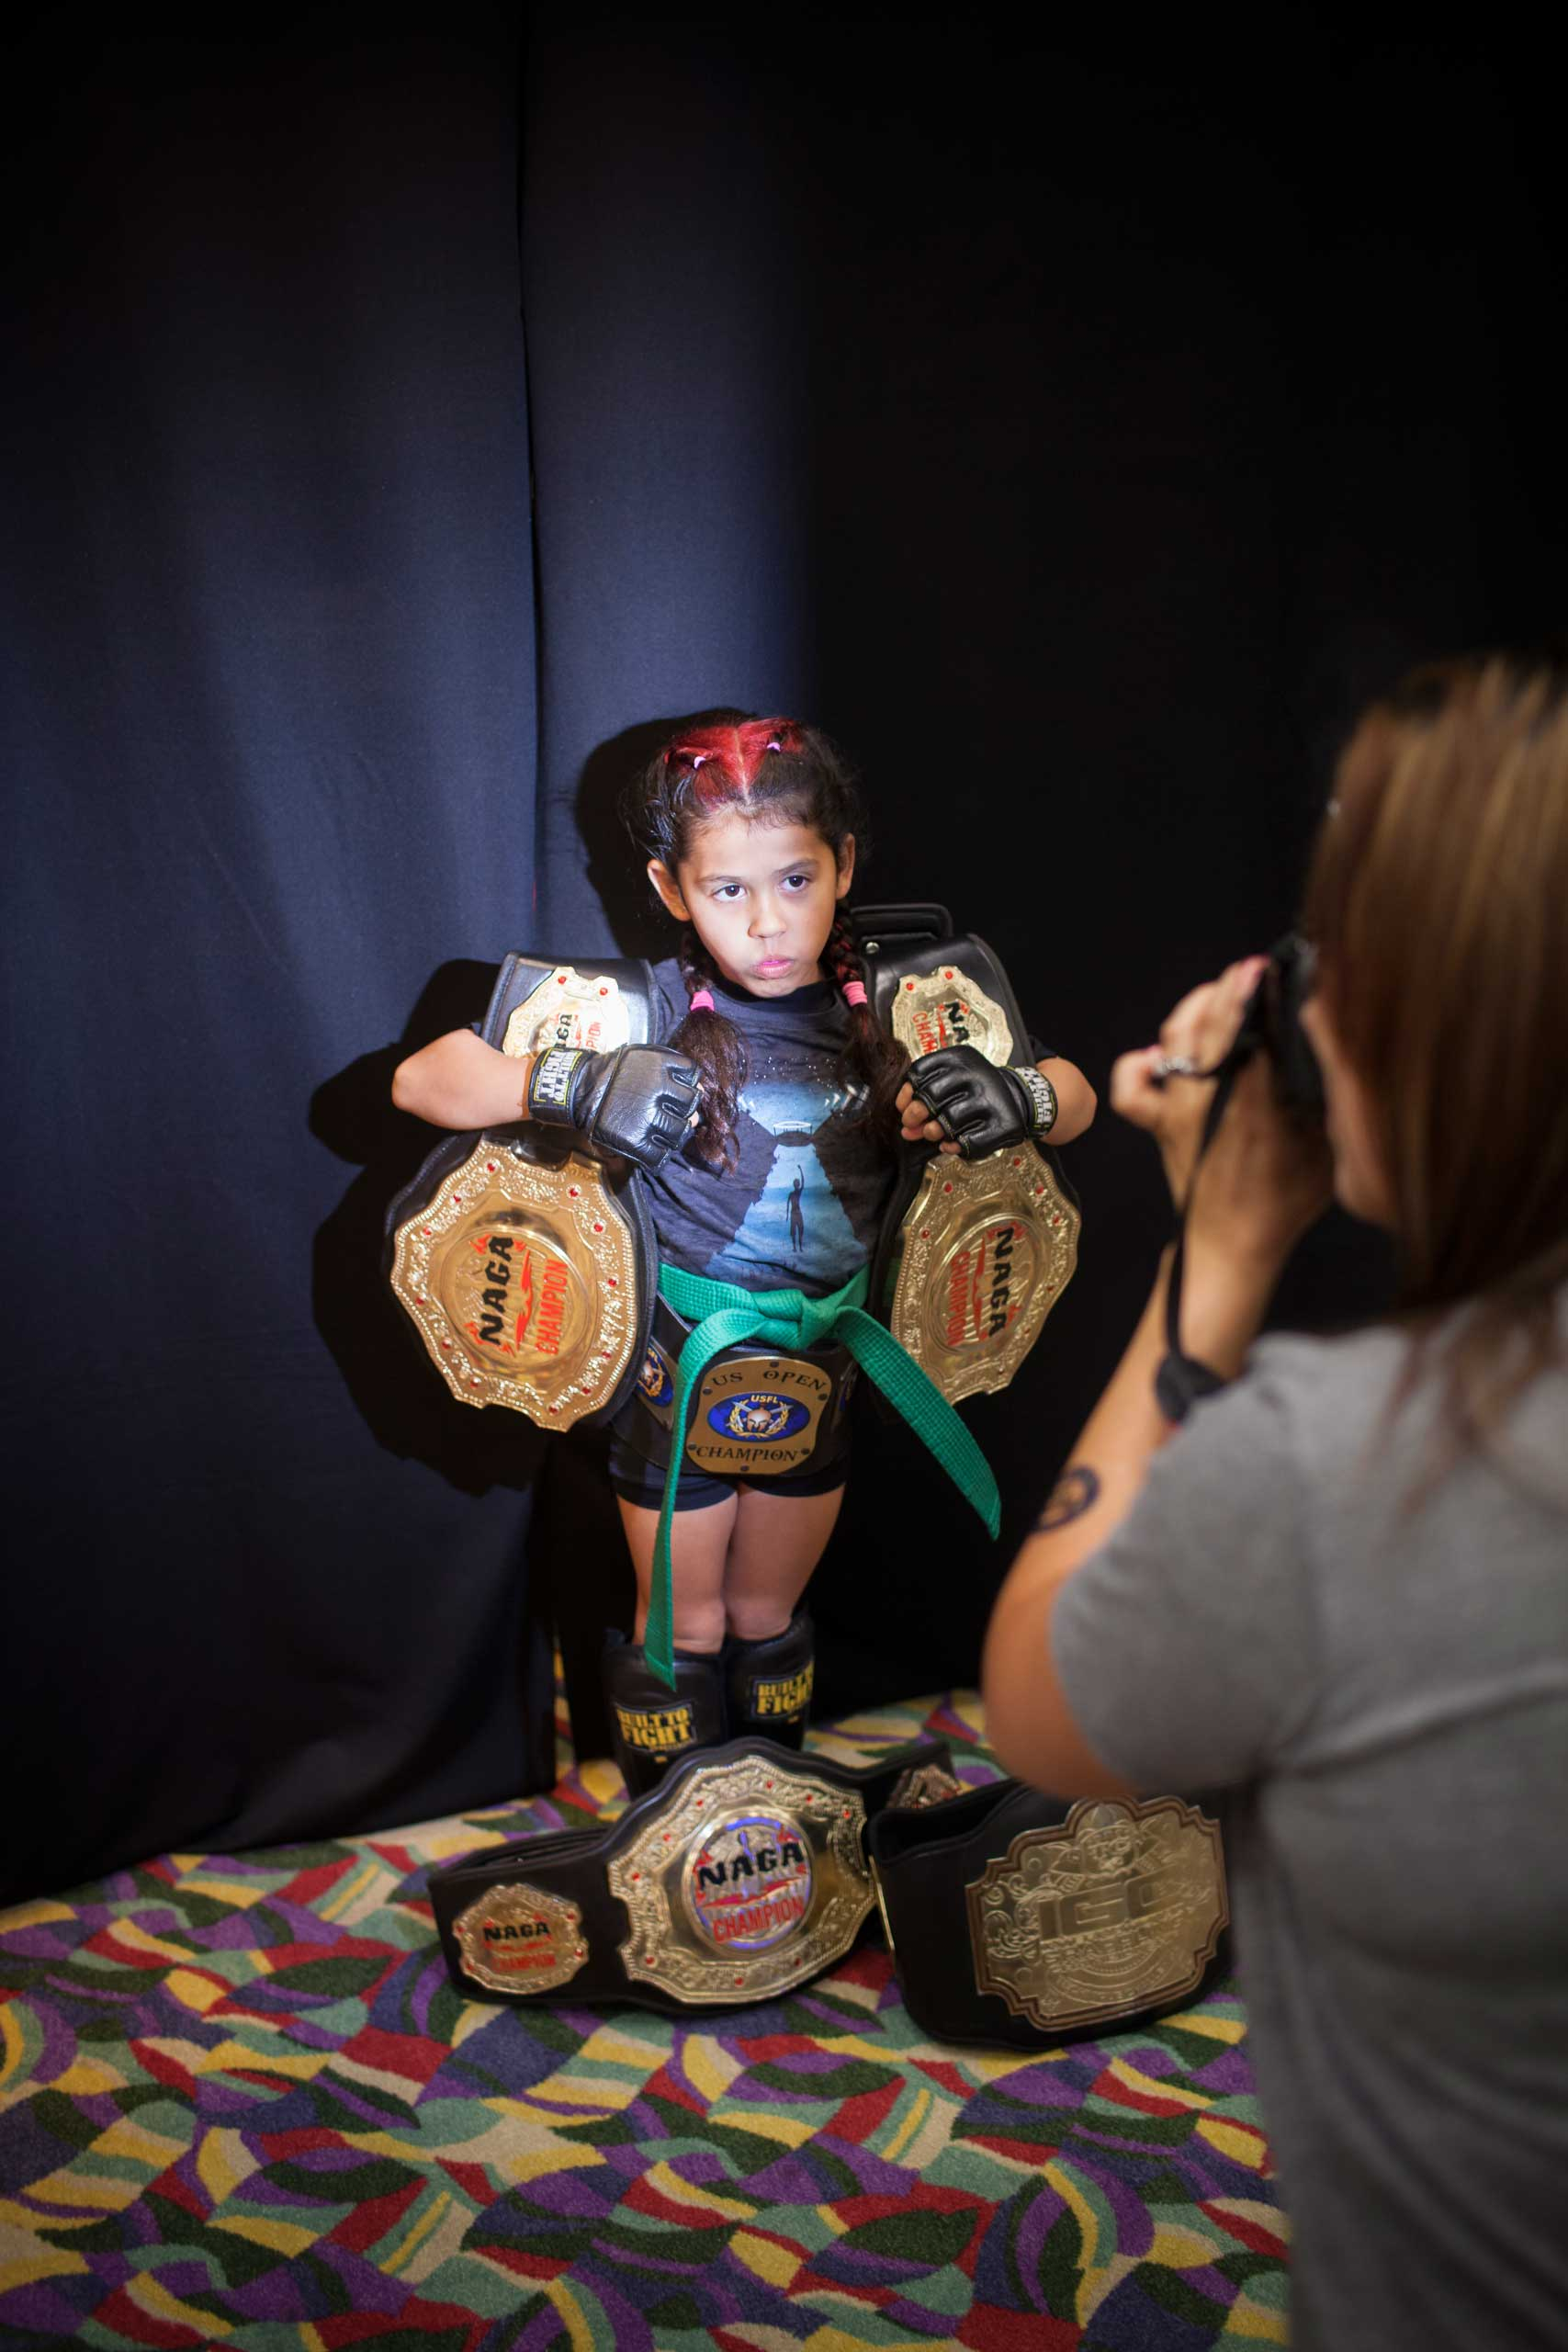 Regina  Black Widow  Awana, 7, with her Championship belts, posing for her sponsor at United States Fight League All-star Pankration show at Blue Water Casino in Parker, Arizona, Oct. 2013.